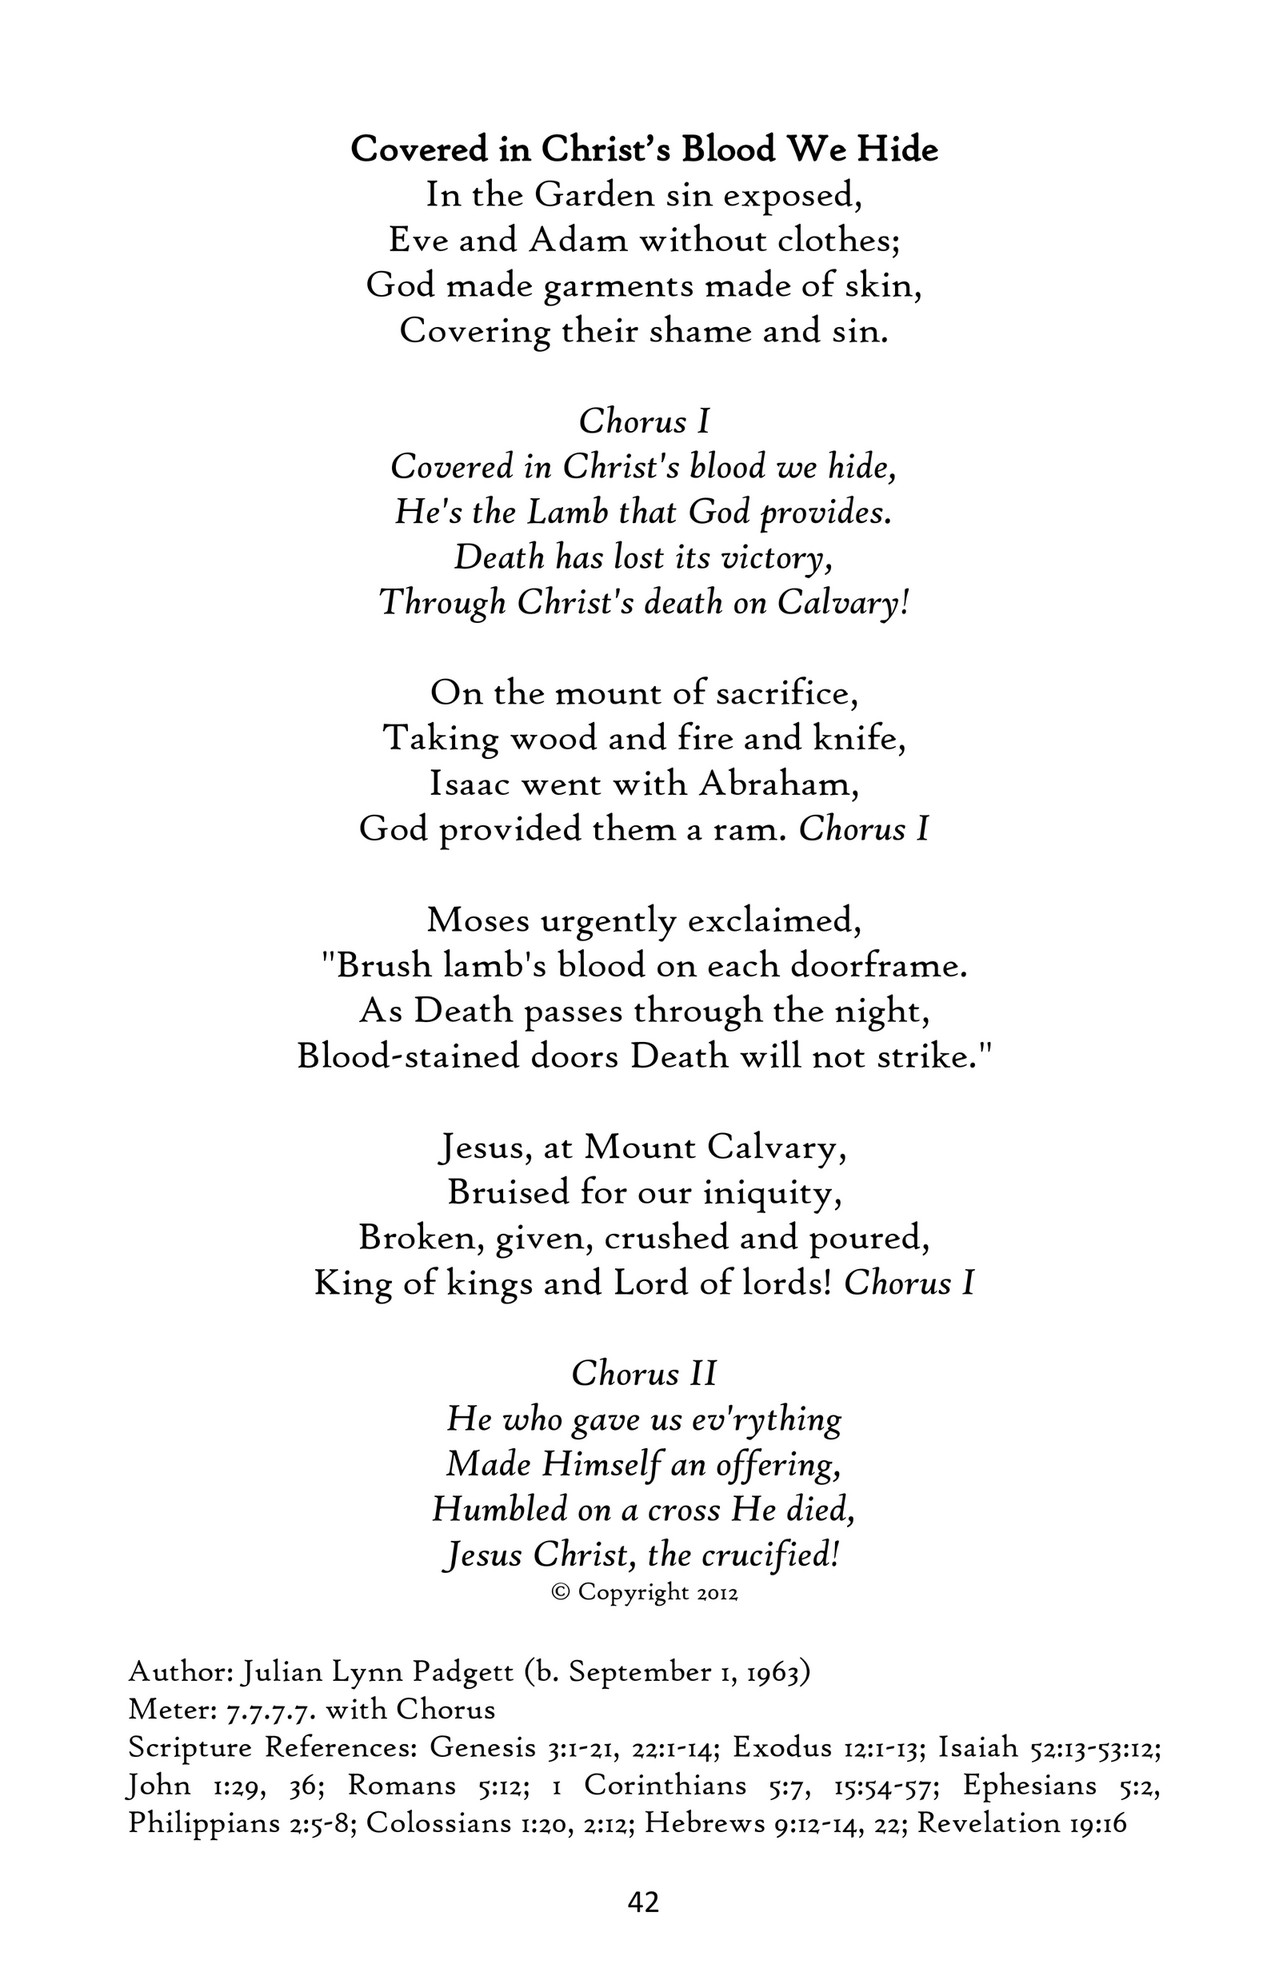 Colossians 3 3 this text provides a salvation history with four biblical scenes where sacrifice is central the first three verses are based on